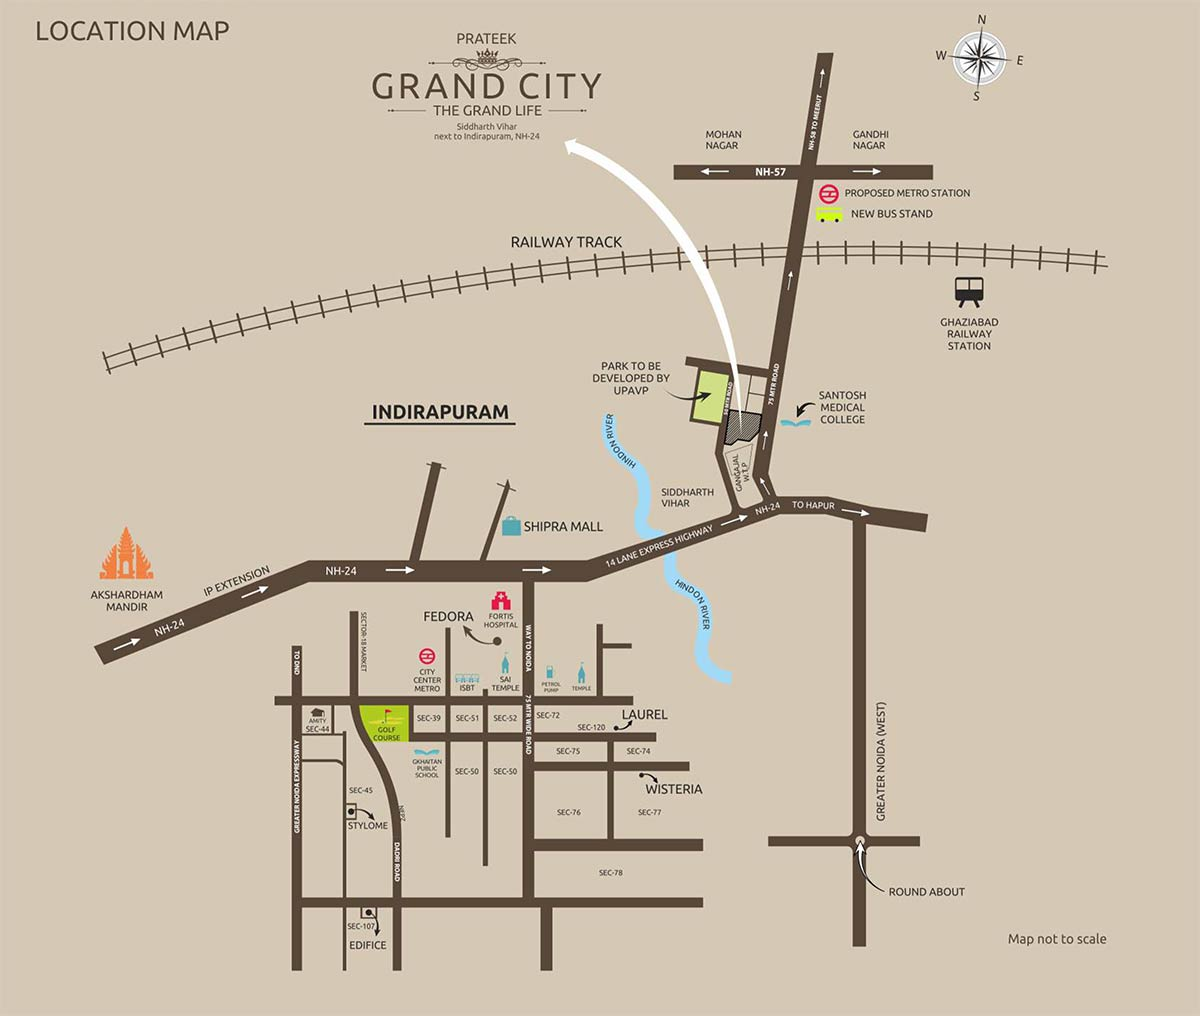 Prateek Grand City Location Map